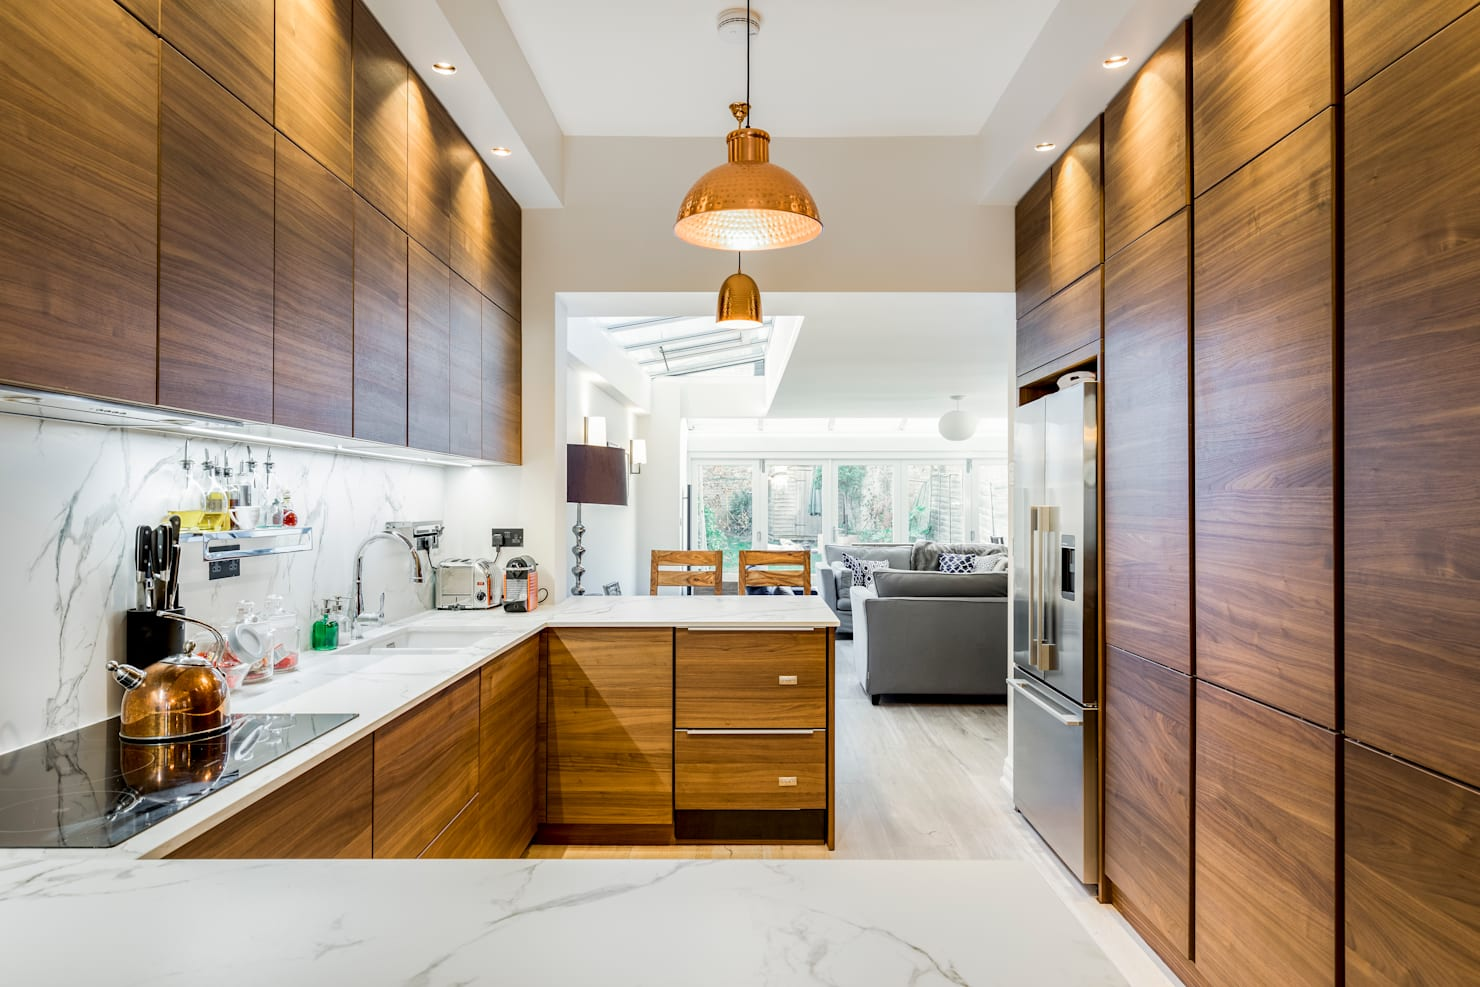 27 kitchens to fall in love with!